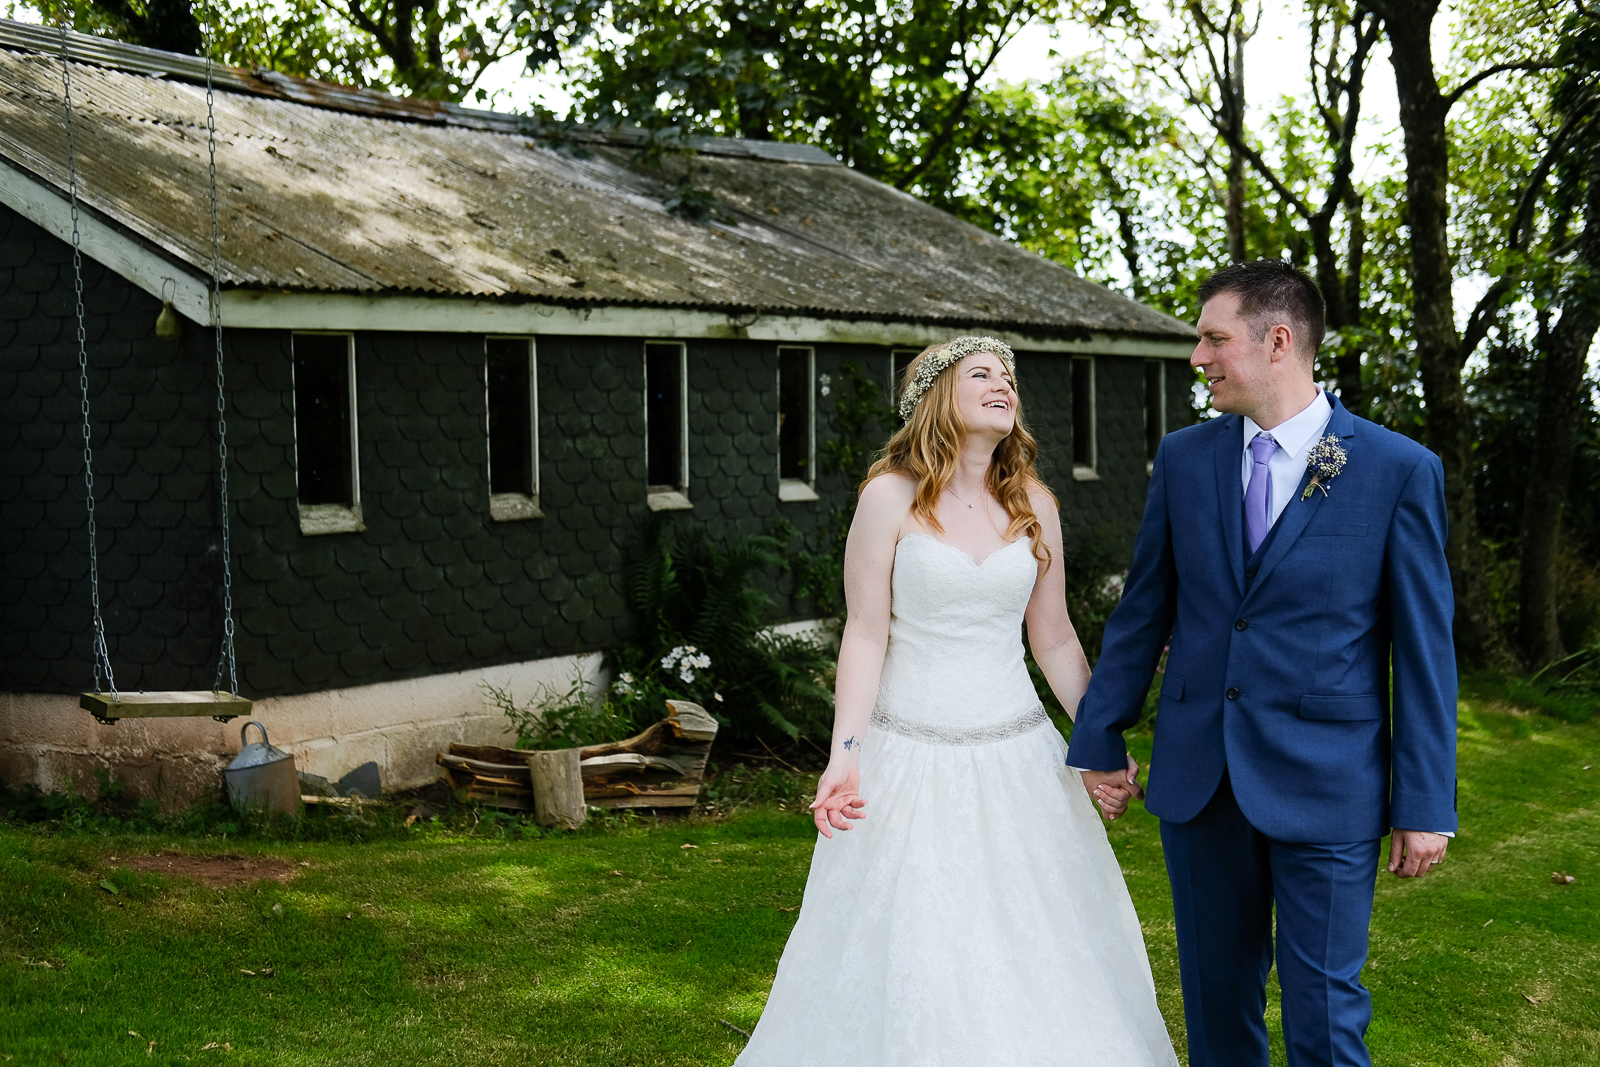 Rustic elopement at The Cow Shed in Cornwall 056.jpg